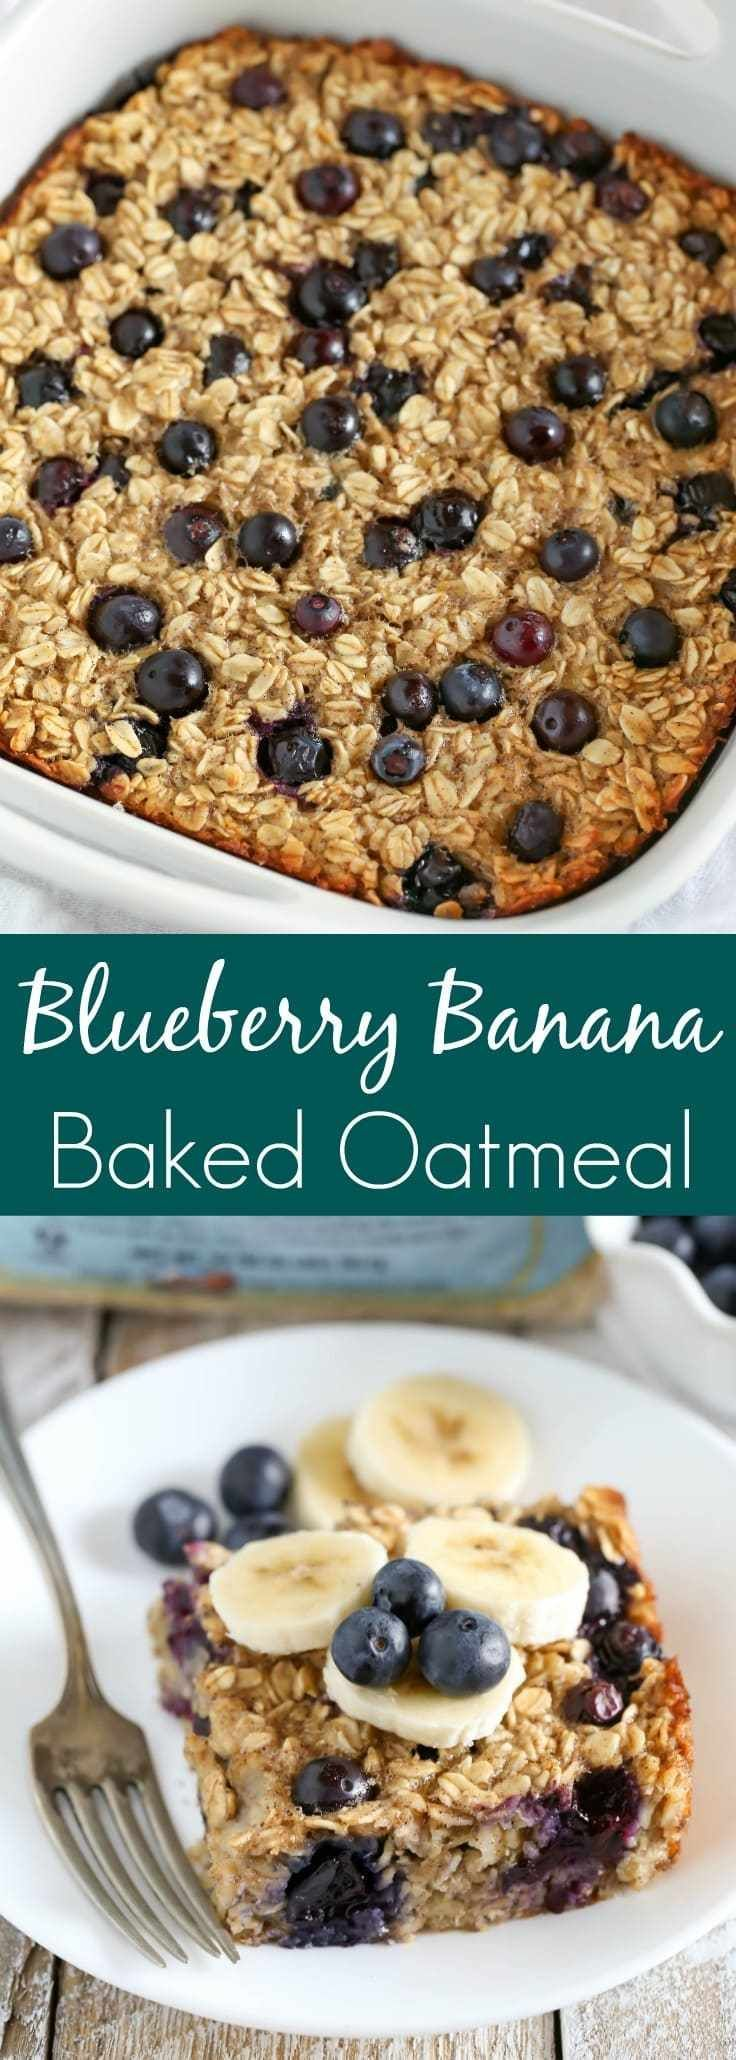 This Blueberry Banana Baked Oatmeal is easy to make and perfect for a quick, healthy breakfast or snack throughout the week! Blueberry Banana Baked Oatmeal is easy to make and perfect for a quick, healthy breakfast or snack throughout the week!